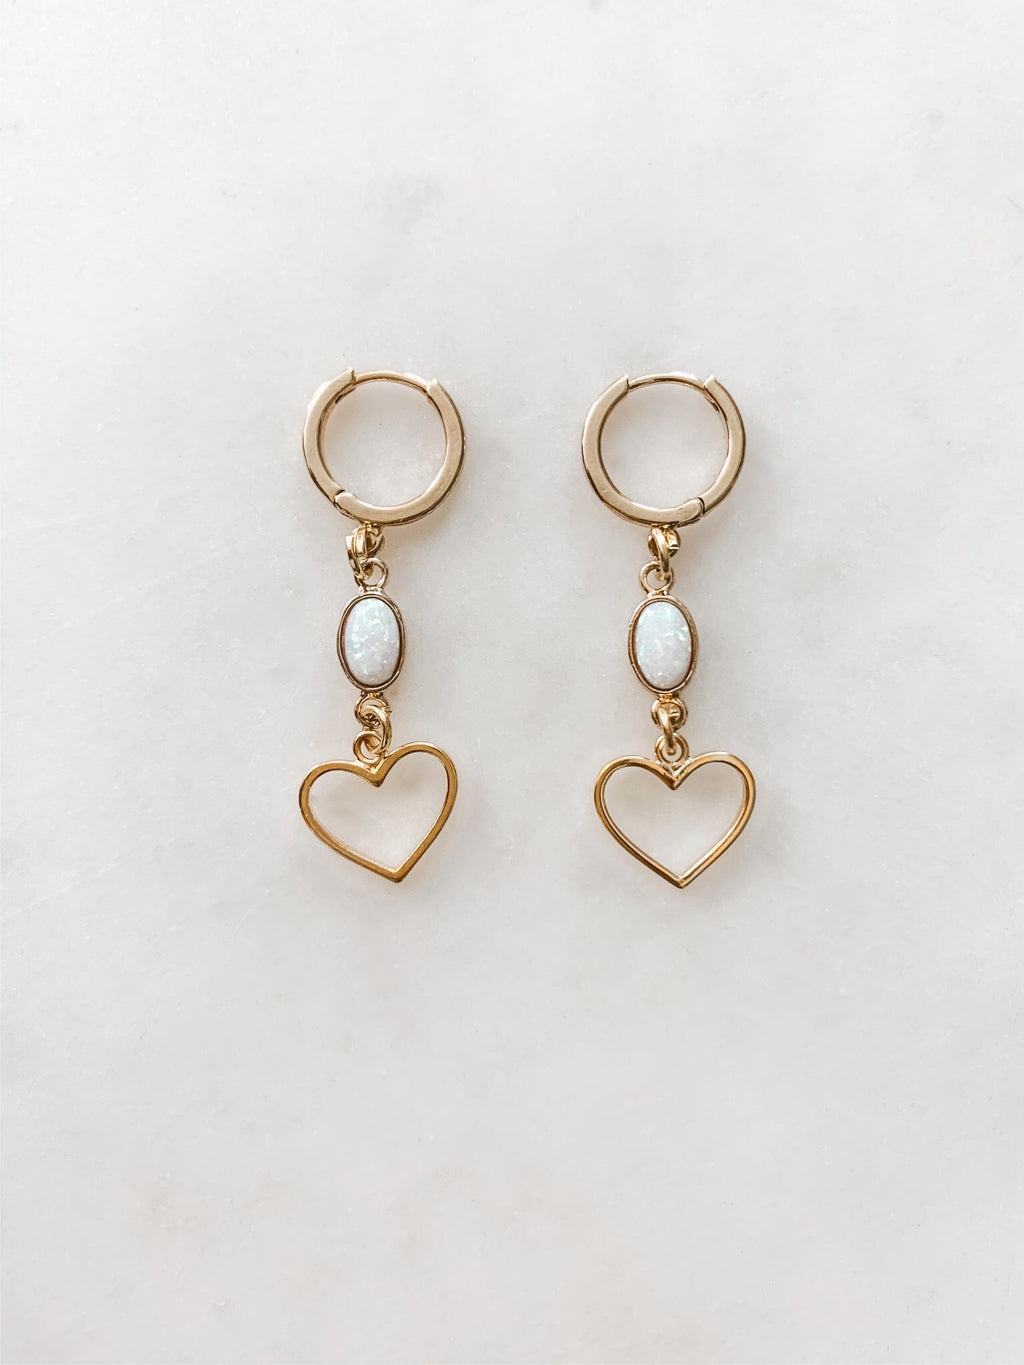 I Heart U Earrings (Buy 1, Get 1 50% Off!) - The Pretty Eclectic